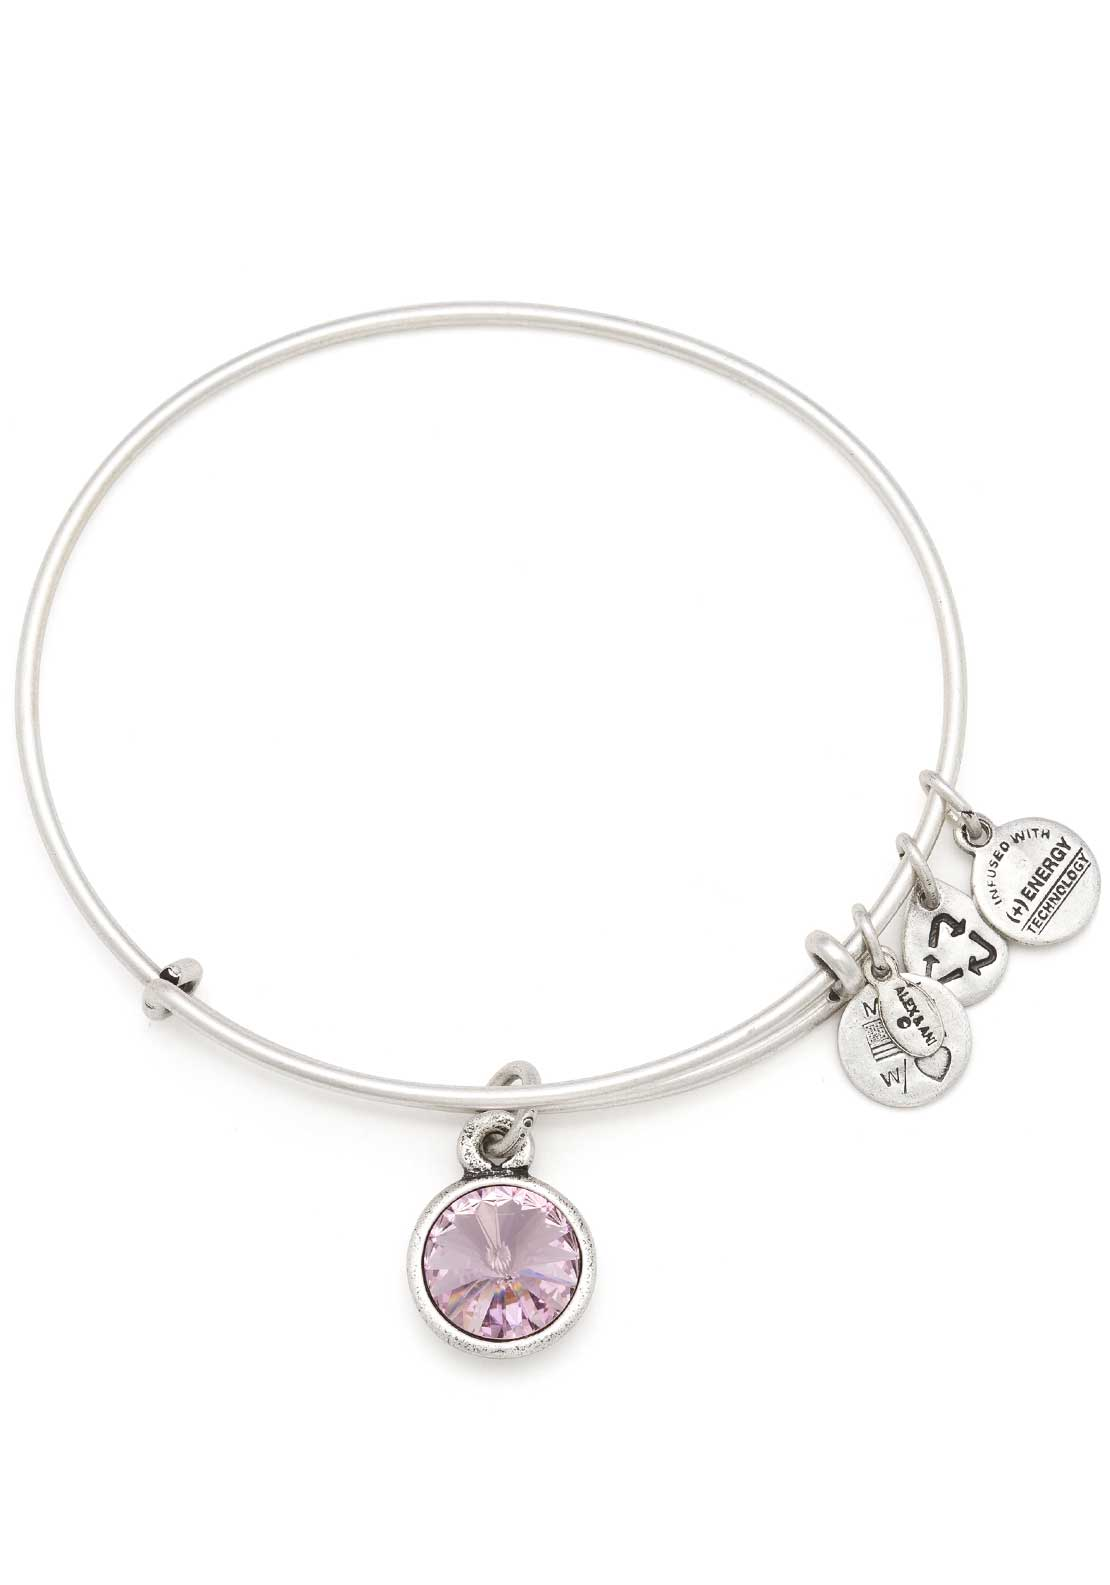 Alex and Ani (+) Energy June Birthstone Light Amethyst Bracelet, Silver